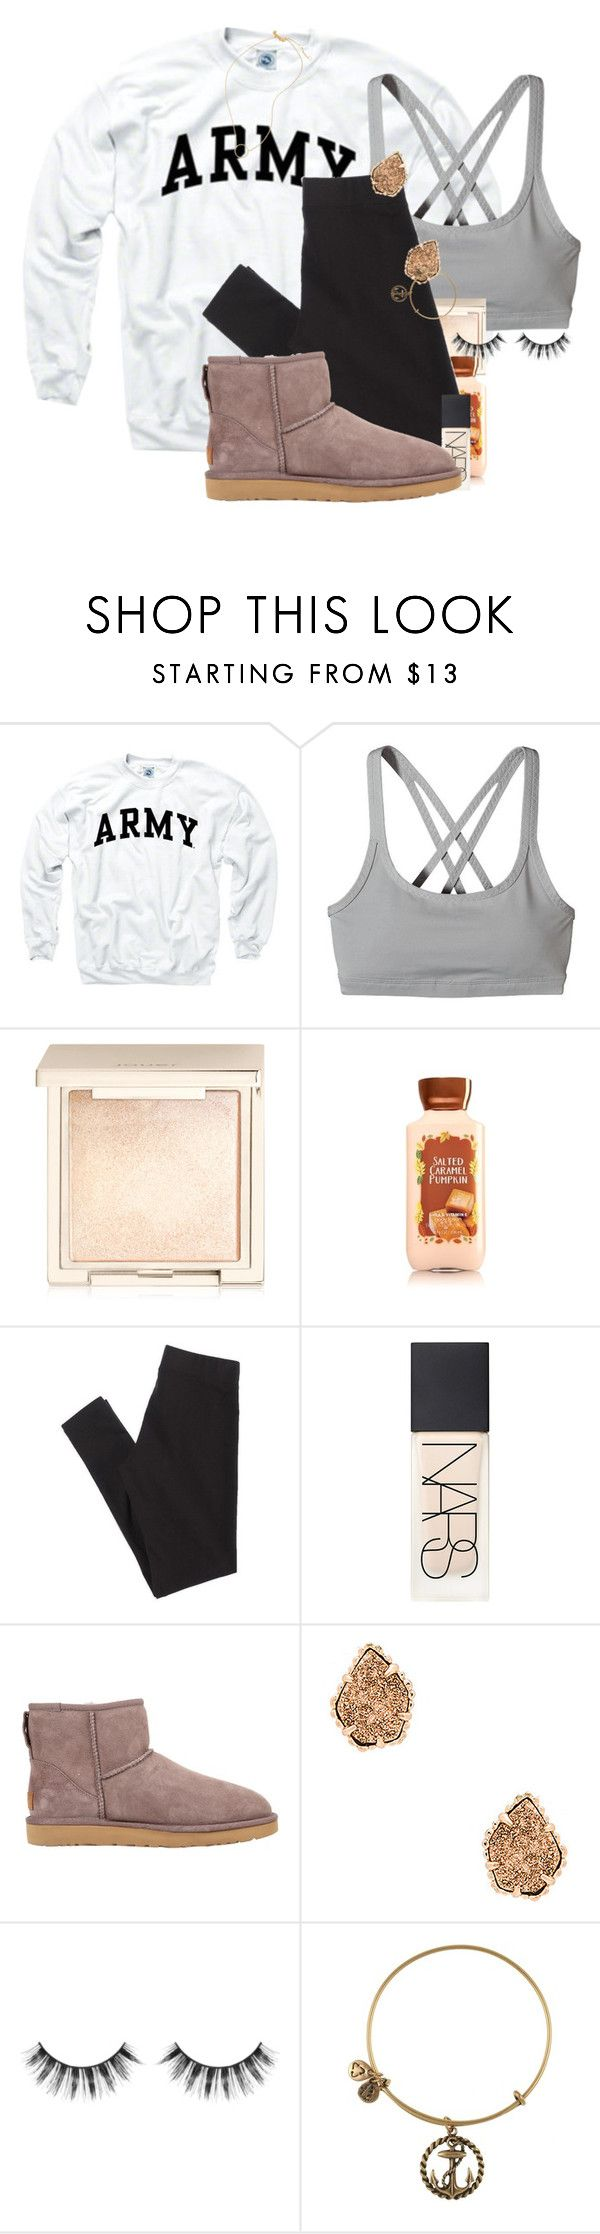 """""""In love with these boots"""" by erinlmarkel ❤ liked on Polyvore featuring Patagonia, Jouer, American Eagle Outfitters, NARS Cosmetics, UGG Australia, Kendra Scott, Sephora Collection, Alex and Ani and Madewell"""